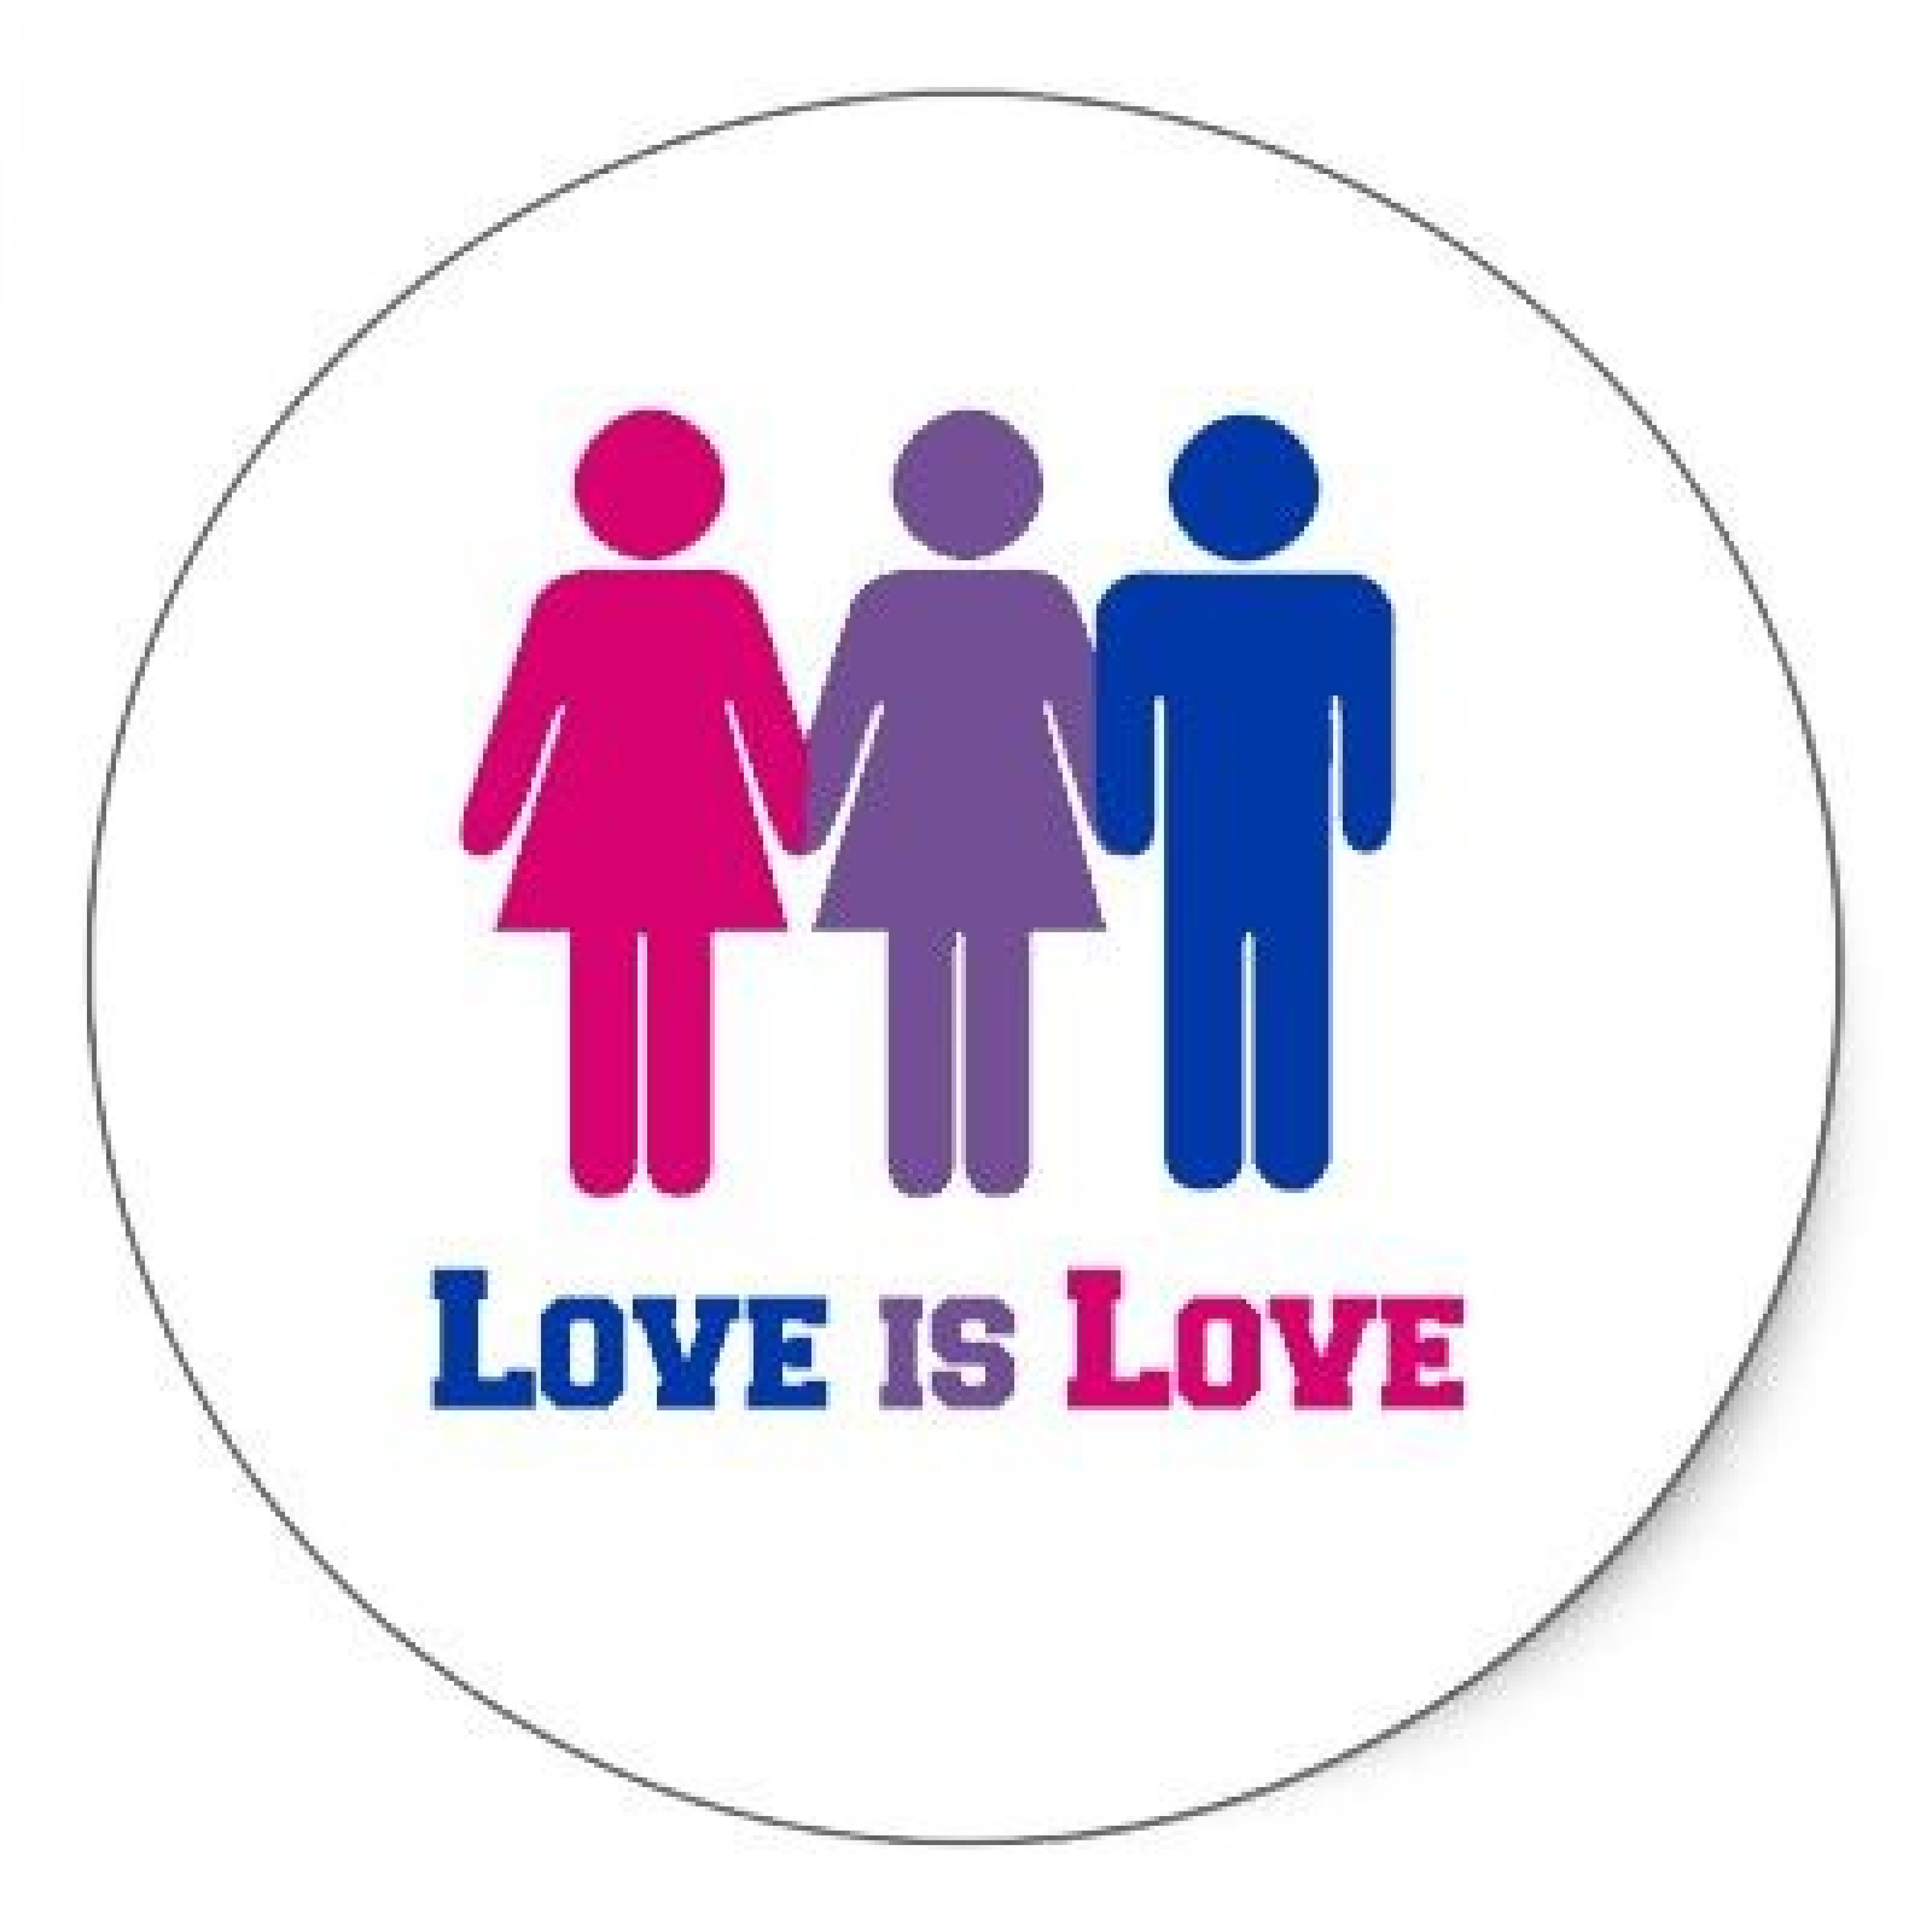 Bisexual women experience hypersexual stigma the temple news